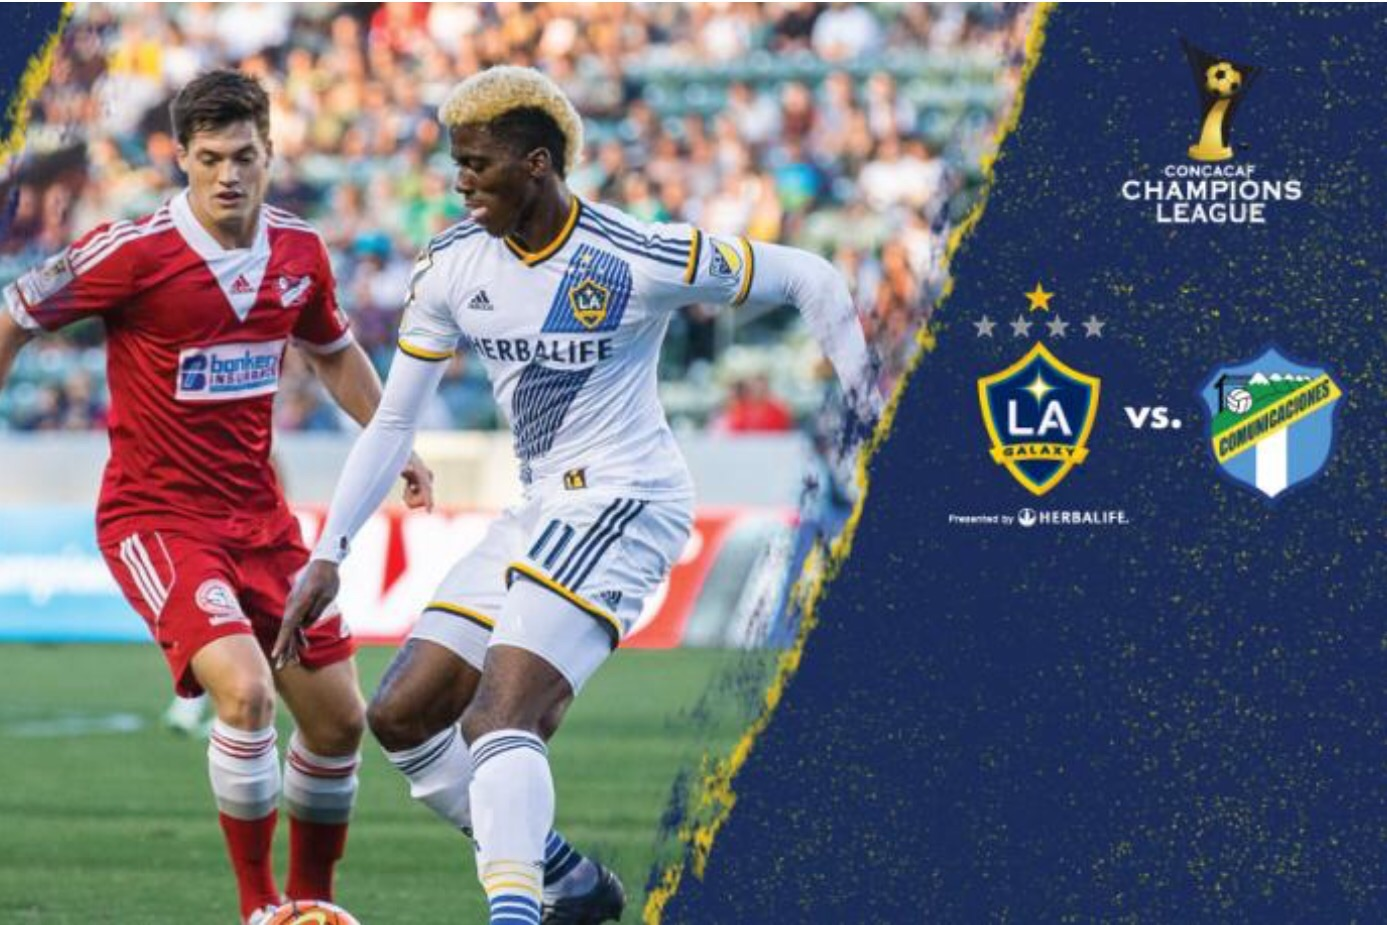 Preview: LA Galaxy vs Communicaciones